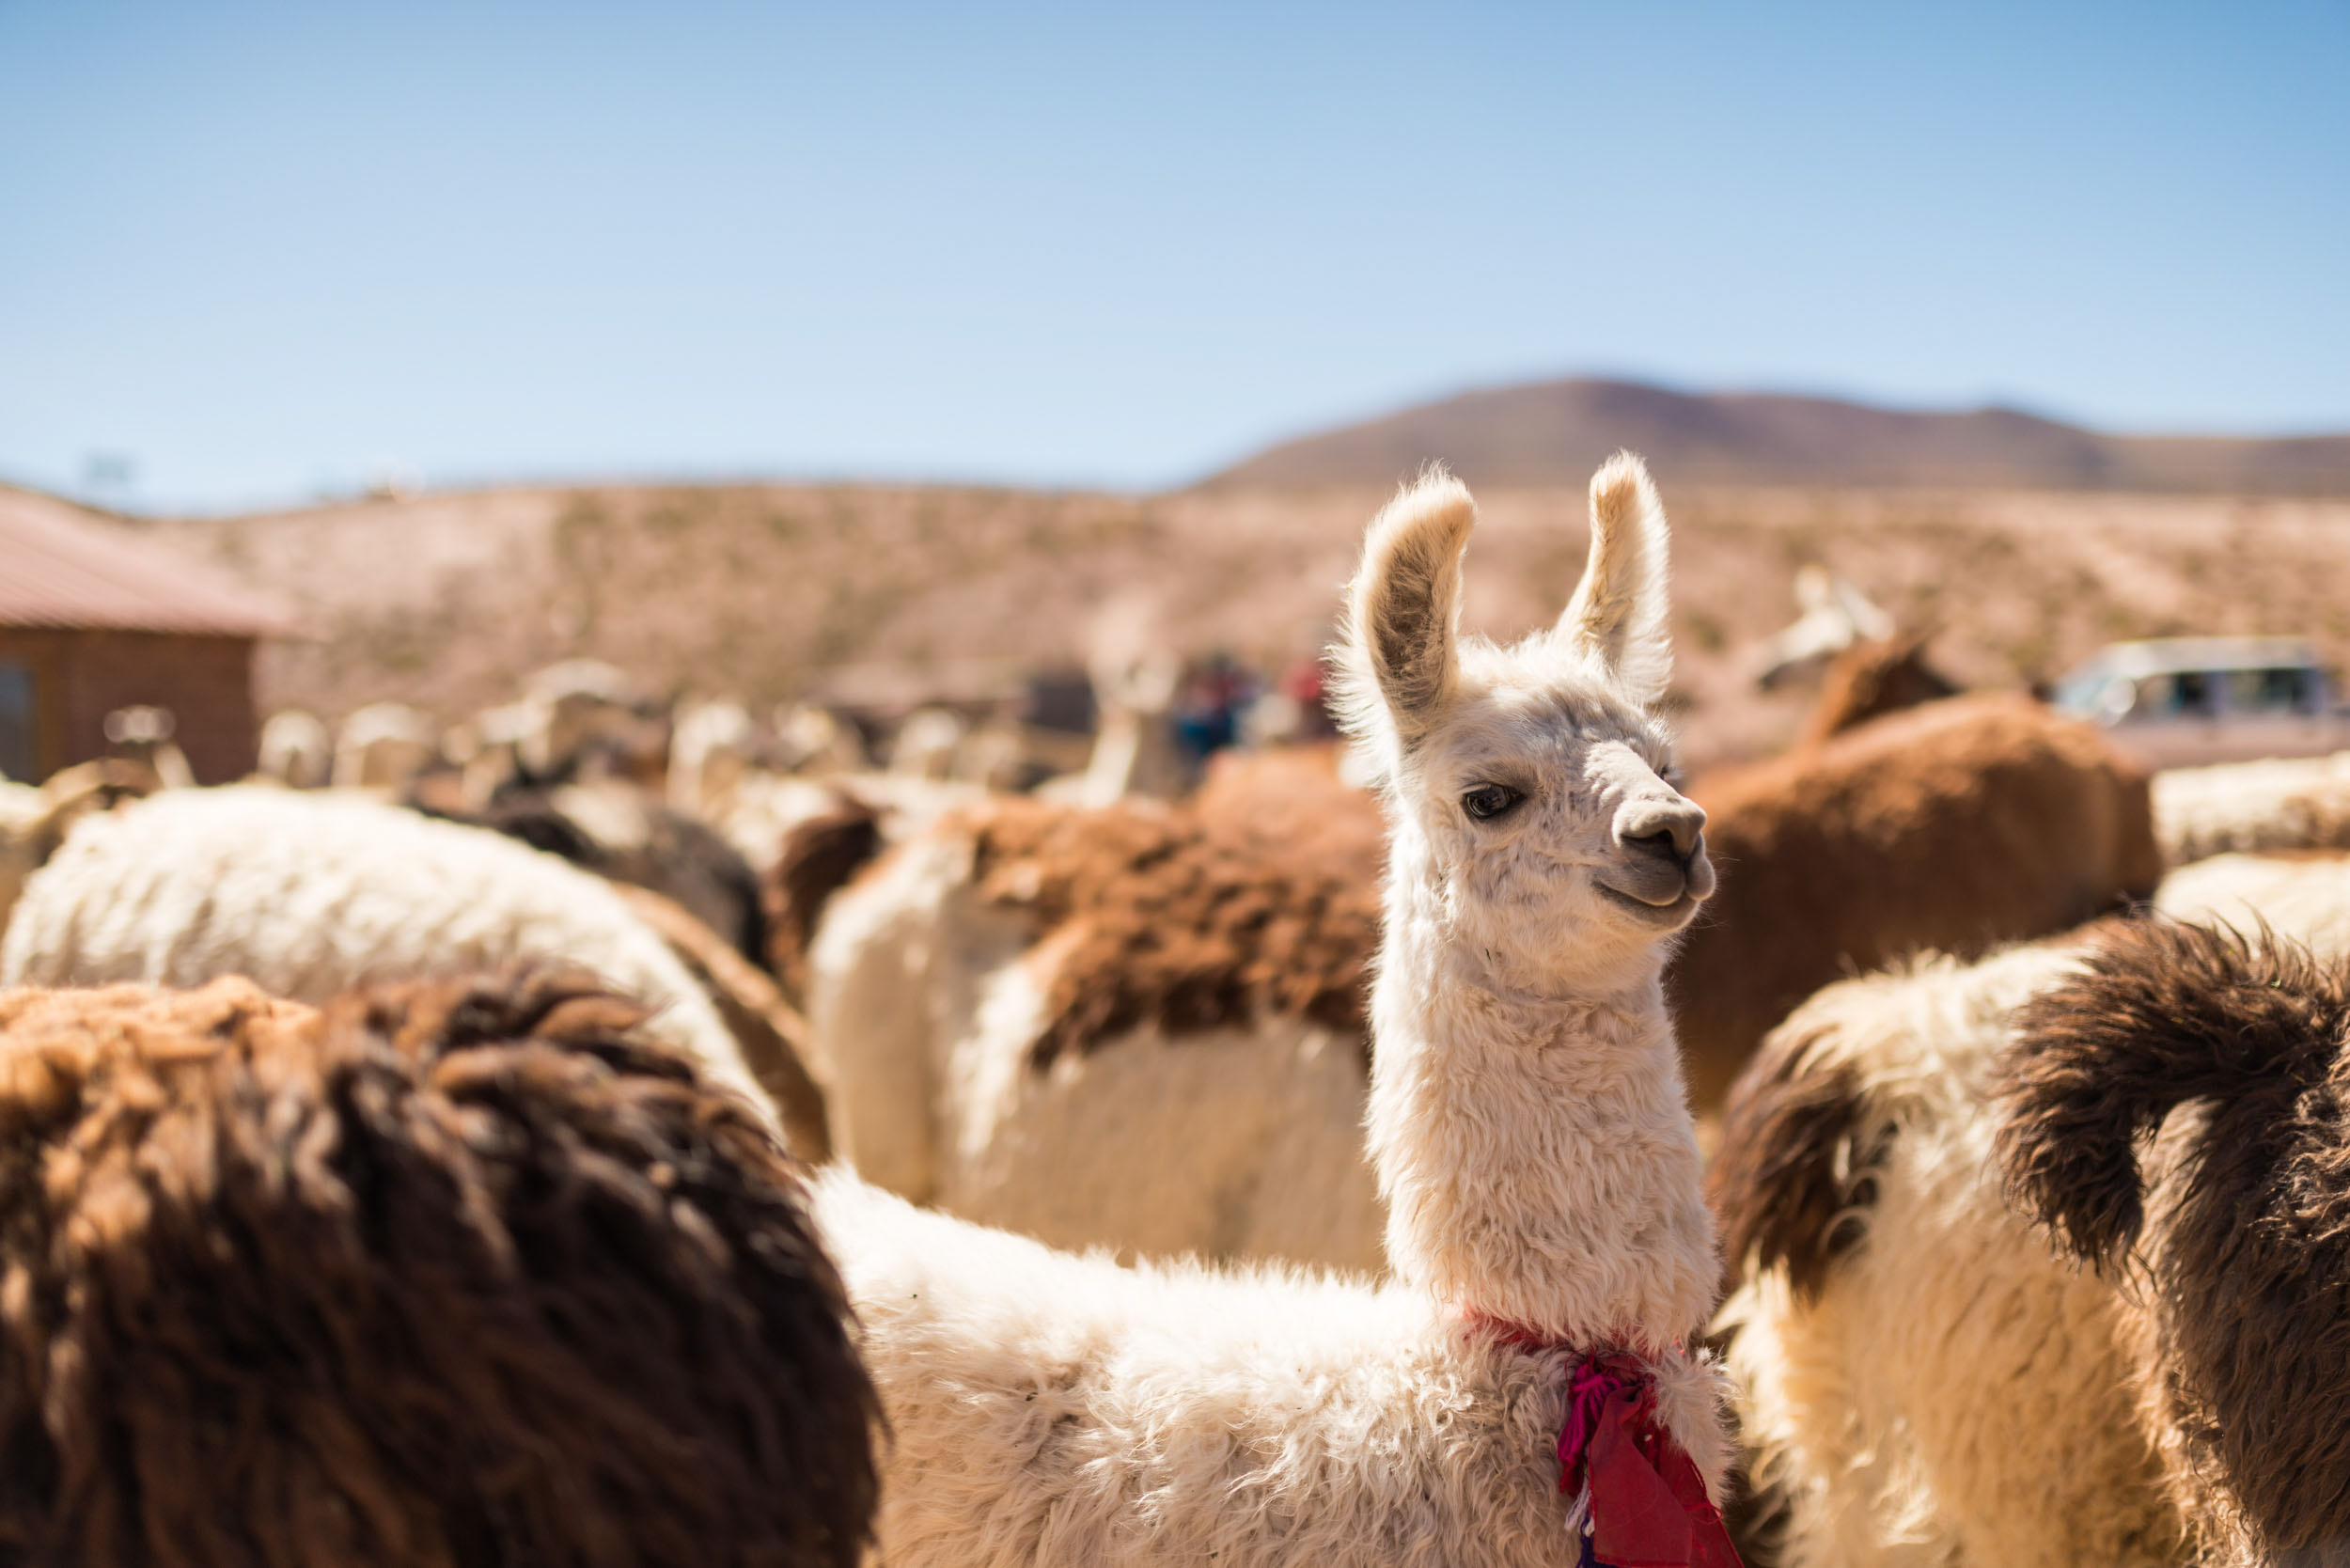 llama-atacama-desert-chile-animal-south-america